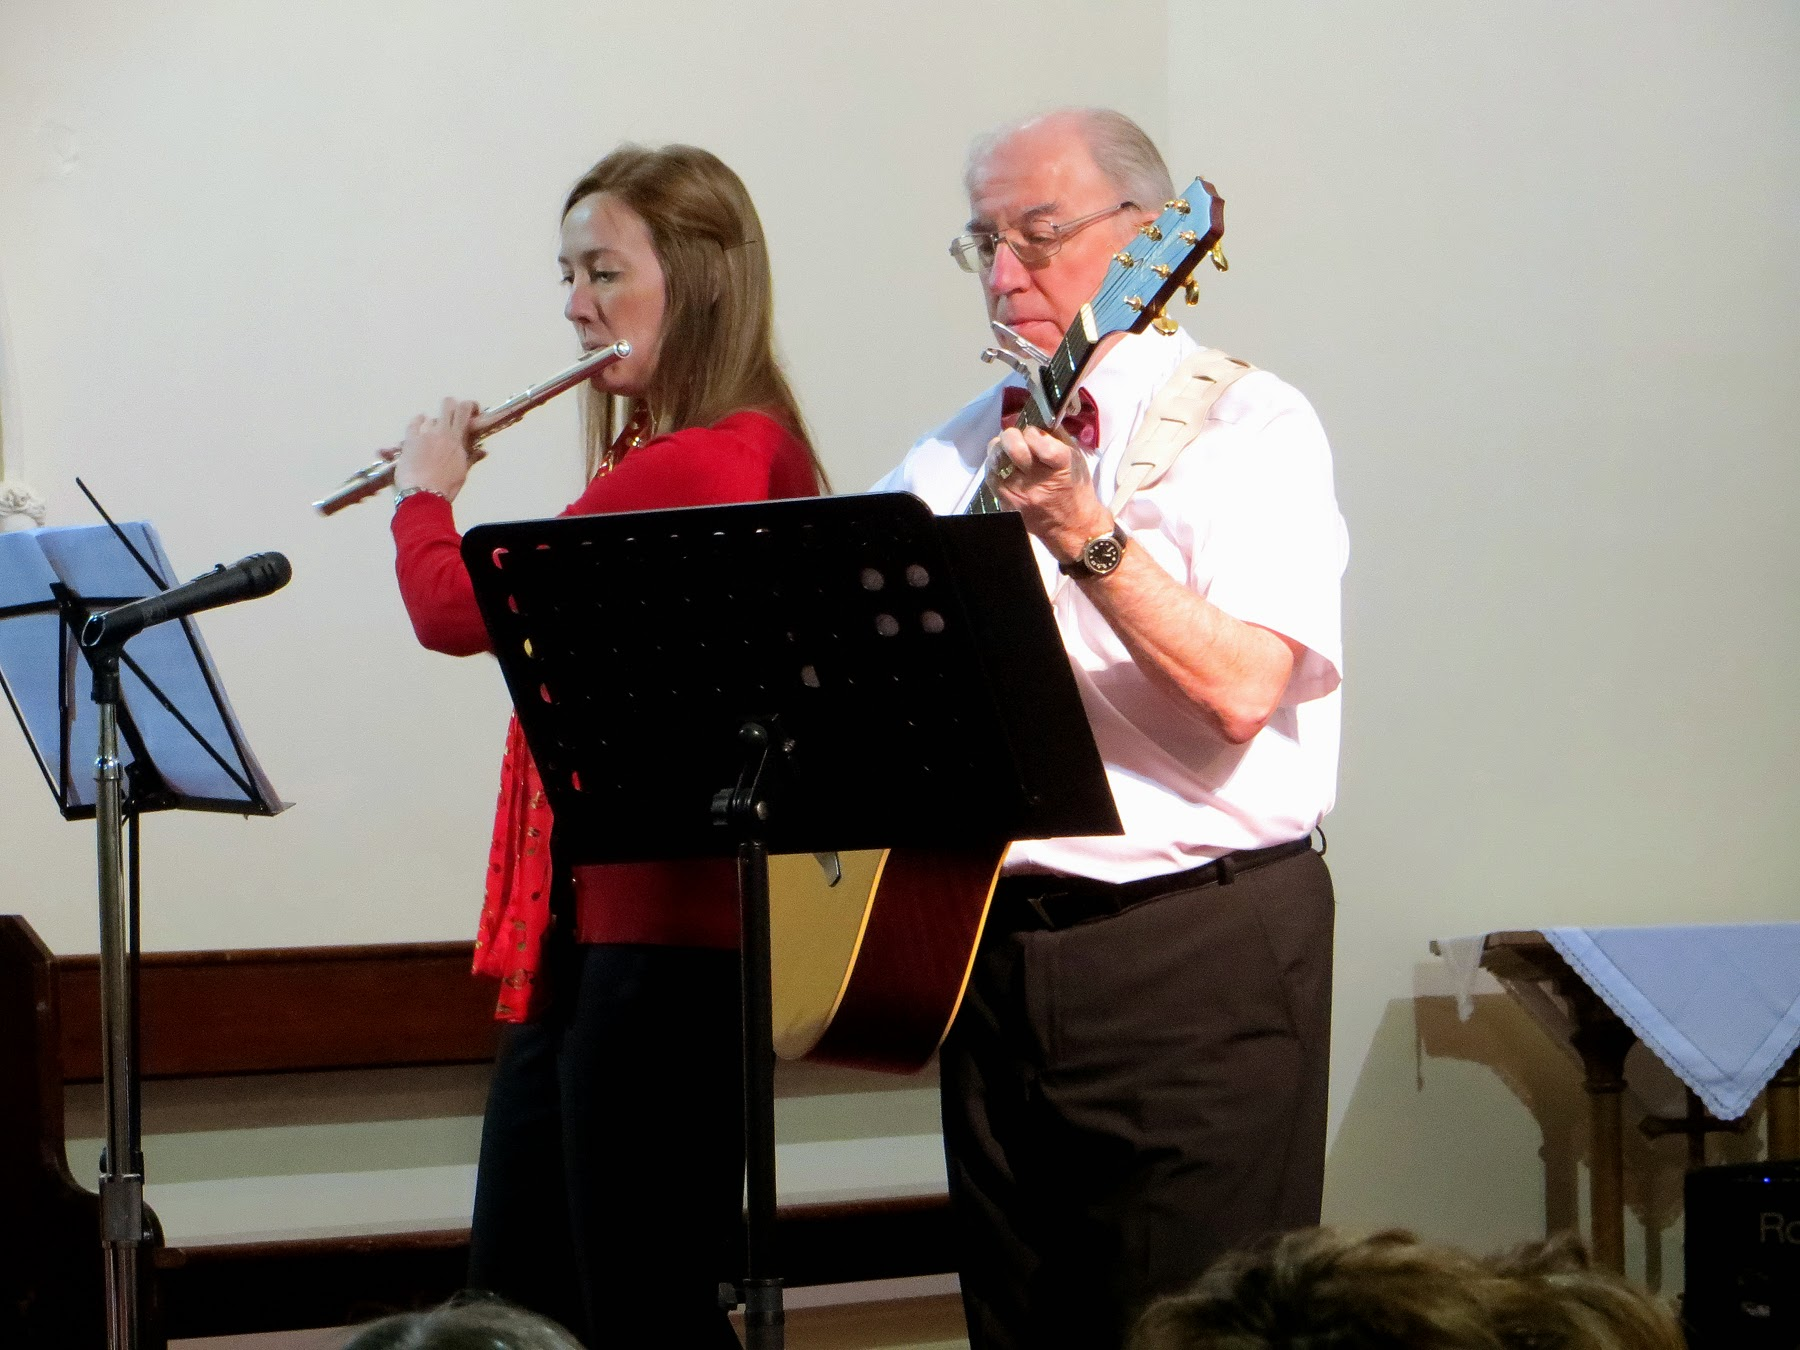 Photo: HEATHER & TONY performed The Streets of London, Mistletoe and Wine, Green Fields of France and Saviour's Day